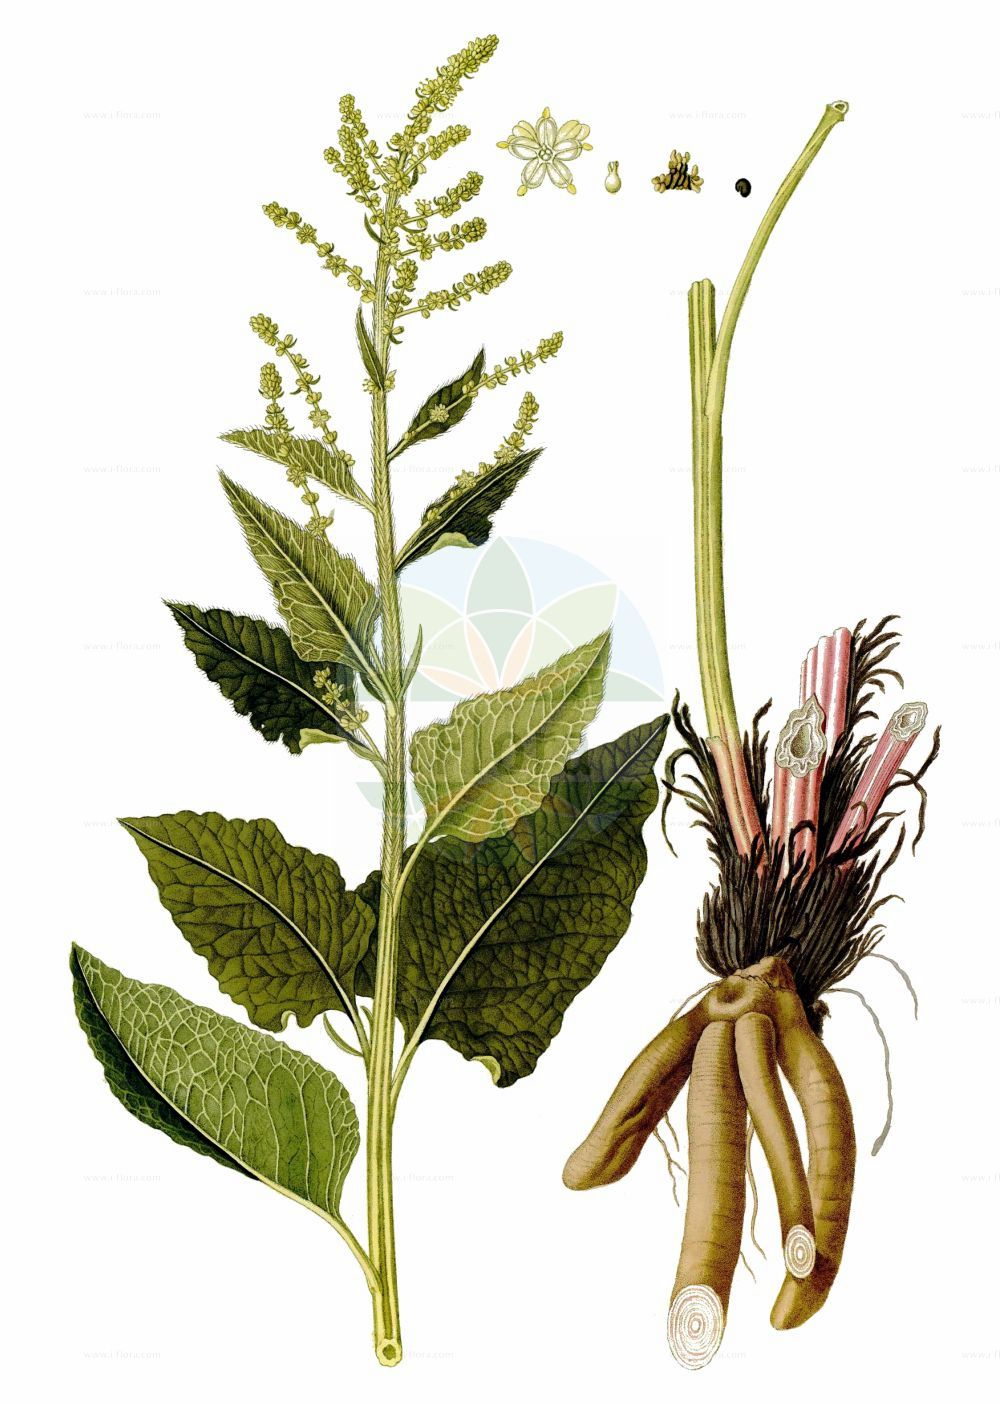 Historische Abbildung von Beta trigyna. Das Bild zeigt Blatt, Bluete, Frucht und Same. ---- Historical Drawing of Beta trigyna.The image is showing leaf, flower, fruit and seed.(Beta trigyna,Beta hybrida,Beta intermedia,Beta trigyna,Beta,Ruebe,Beet,Amaranthaceae,Fuchsschwanzgewaechse,Pigweed family,Blatt,Bluete,Frucht,Same,leaf,flower,fruit,seed,Waldstein-Wartenberg & Kitaibel (1799-1812))